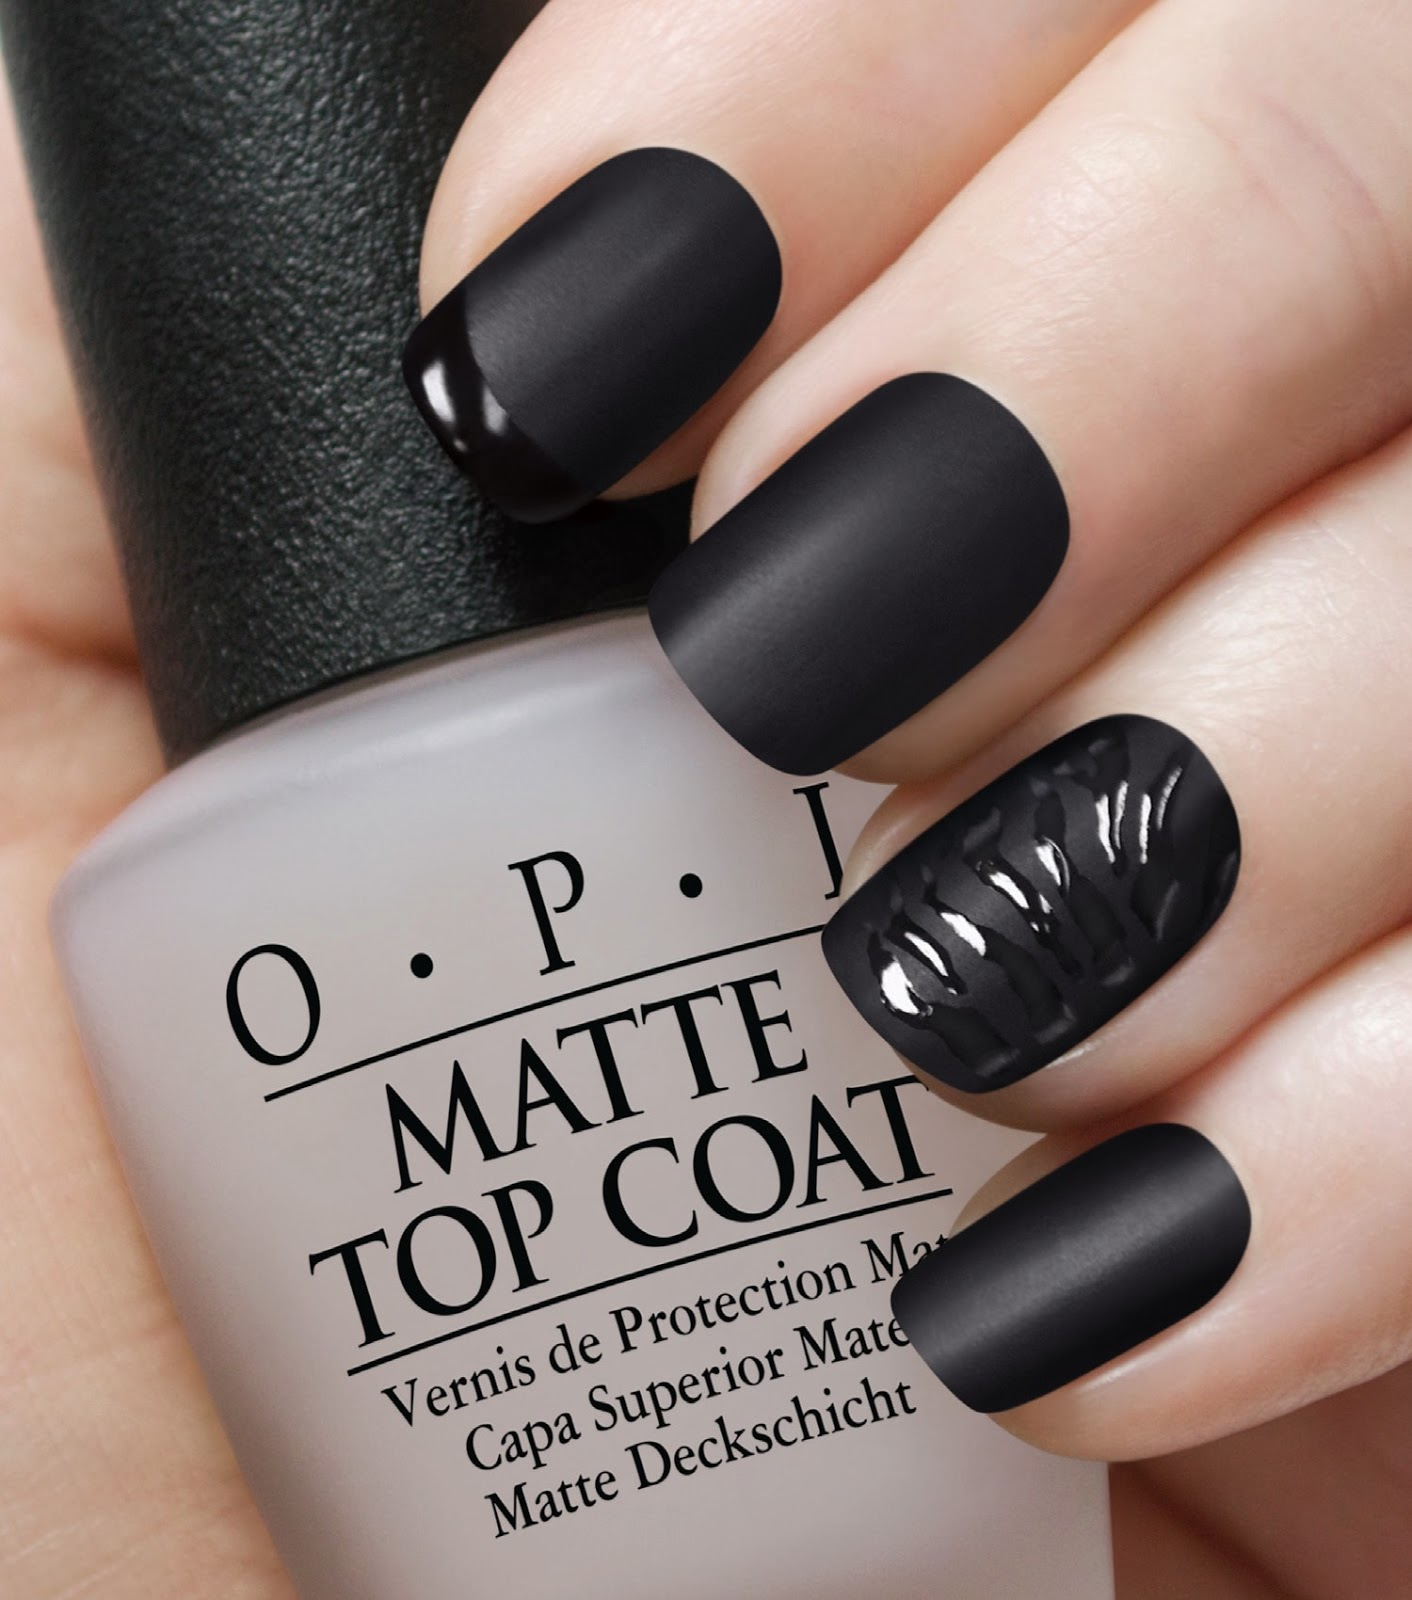 62 Best Pretty Nail Polish Colors For Black Girls Images: OPI Matte Top Coat & The Bond Girls